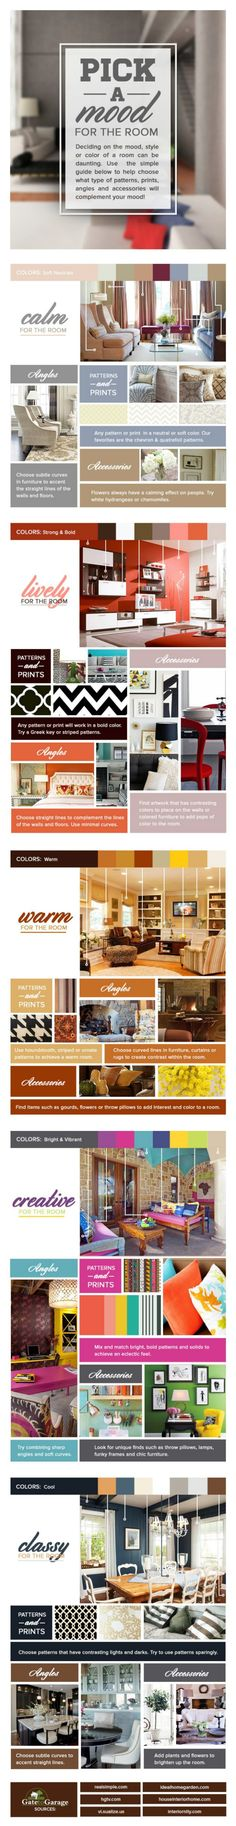 50 Amazingly Clever Cheat Sheets To Simplify Home Decorating Projects - Image Editing - Edit image online tool. - Colors and Moods Infographic 50 Amazingly Clever Cheat Sheets To Simplify Home Decorating Projects Interior Paint Colors, Interior Design Tips, Interior Decorating, Interior Painting, Modern Interior, Apartment Painting, Cosy Interior, Decorating Ideas, Design Ideas